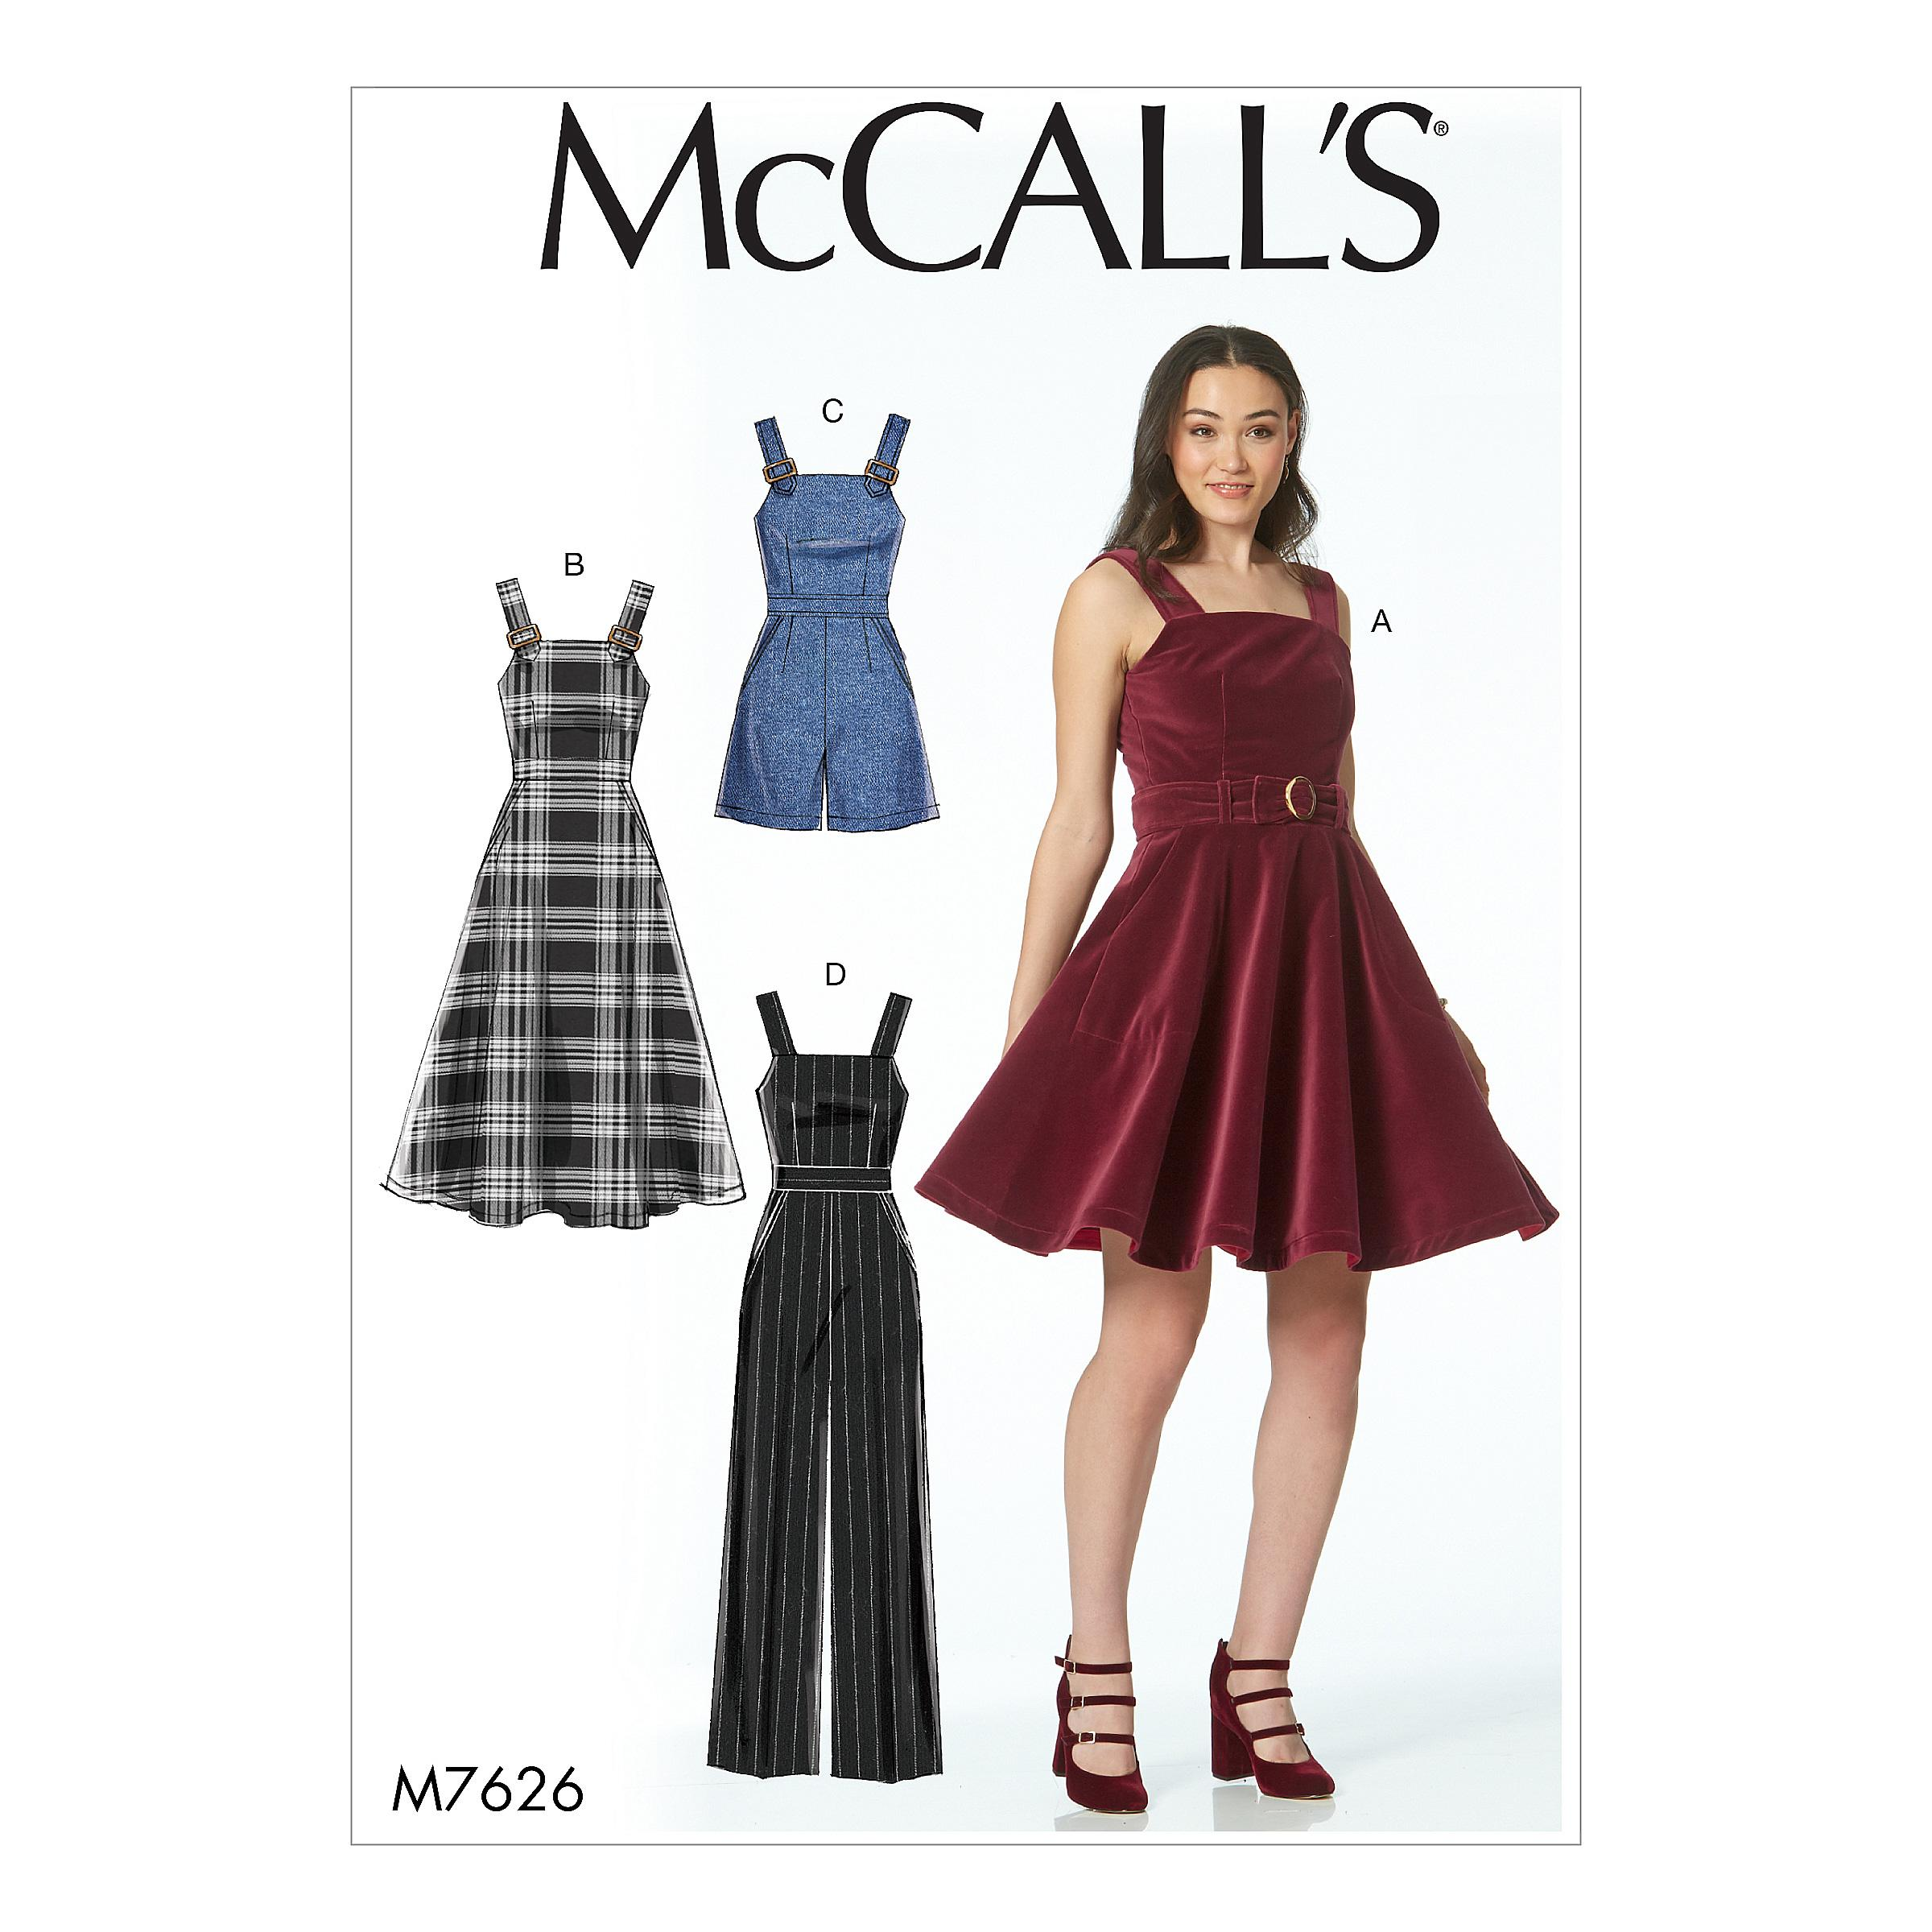 McCalls M7626 Misses Dresses, Misses Pants, Jumpsuits & Shorts, Misses Prom, Evening & Bridal